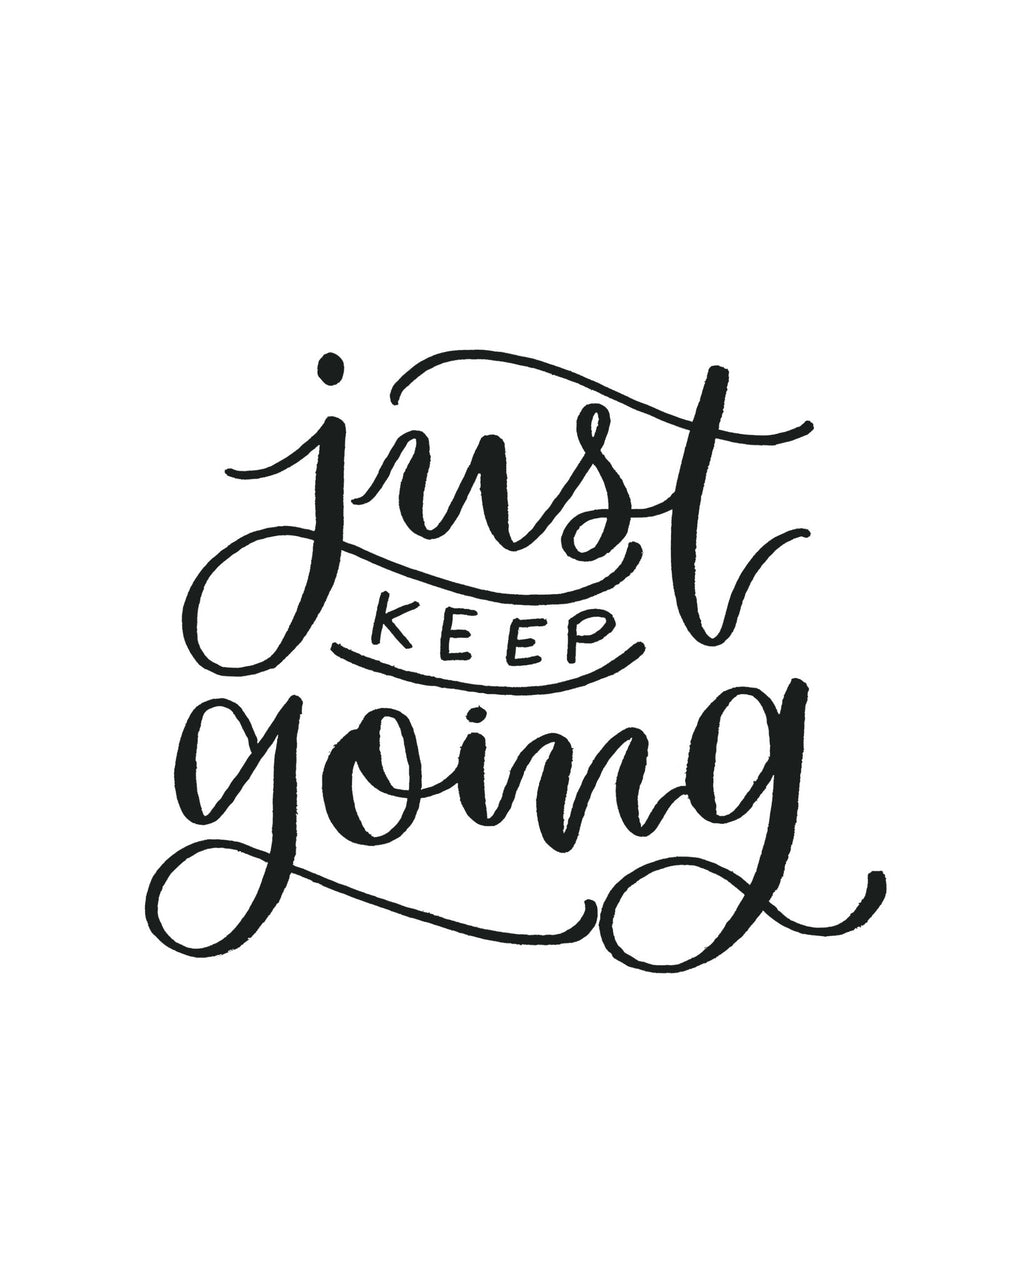 Just Keep Going Printable